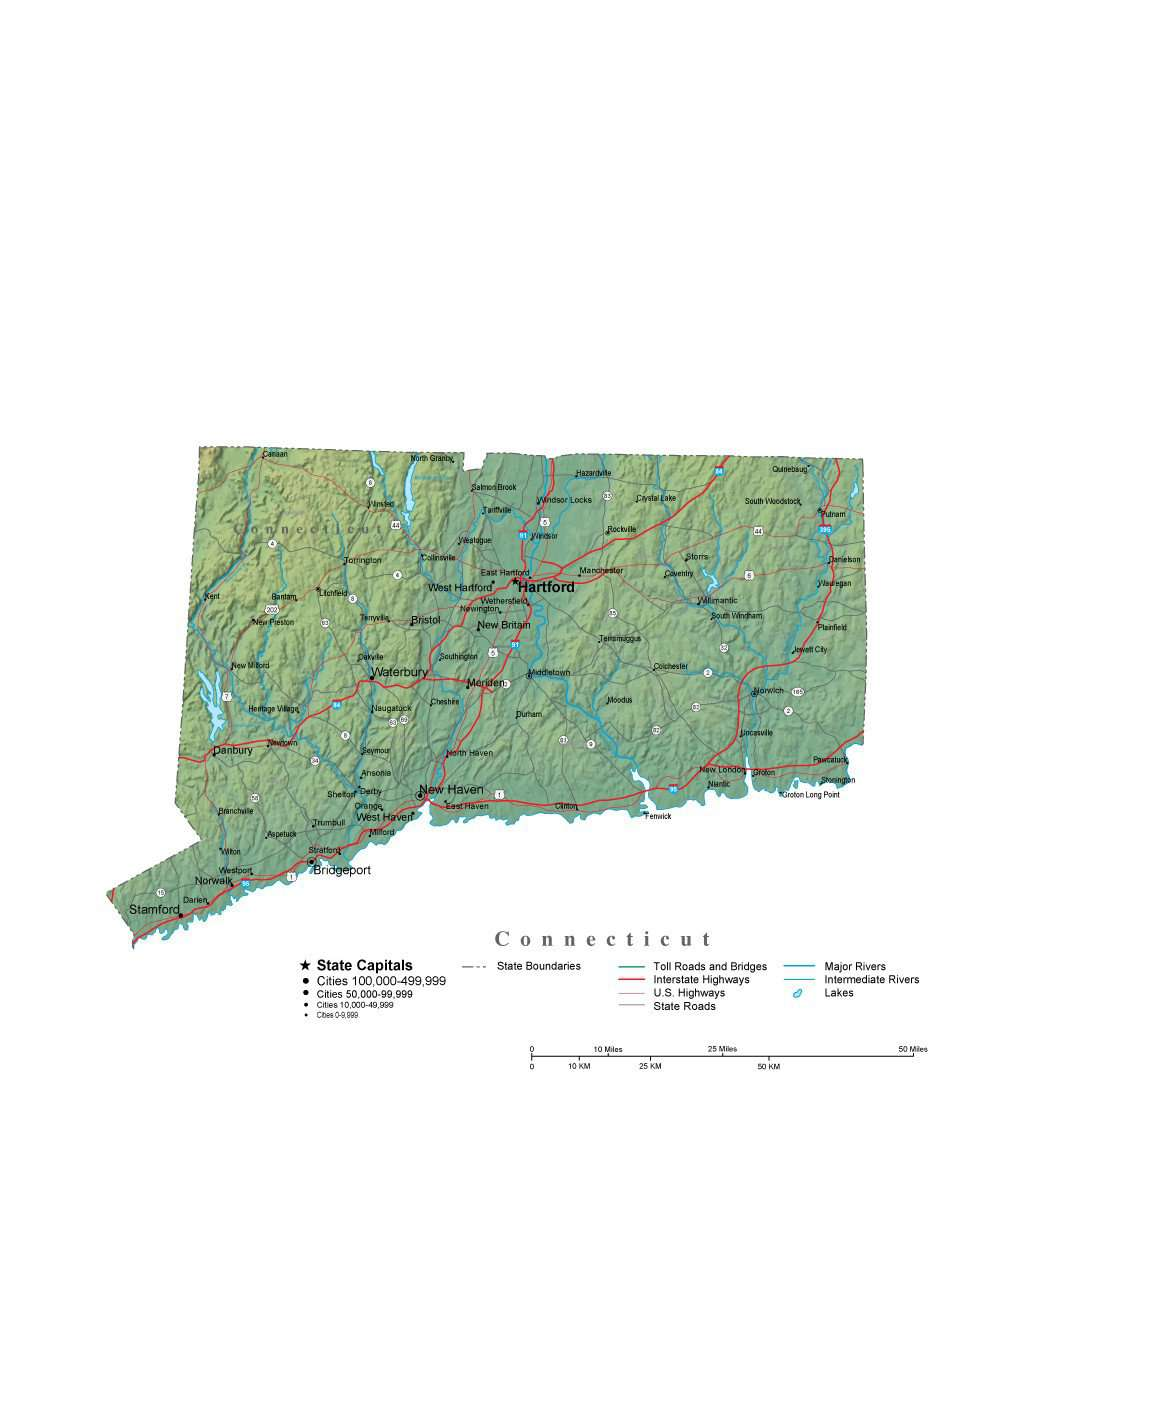 Connecticut Illustrator Vector Map with Cities, Roads and Photoshop ...